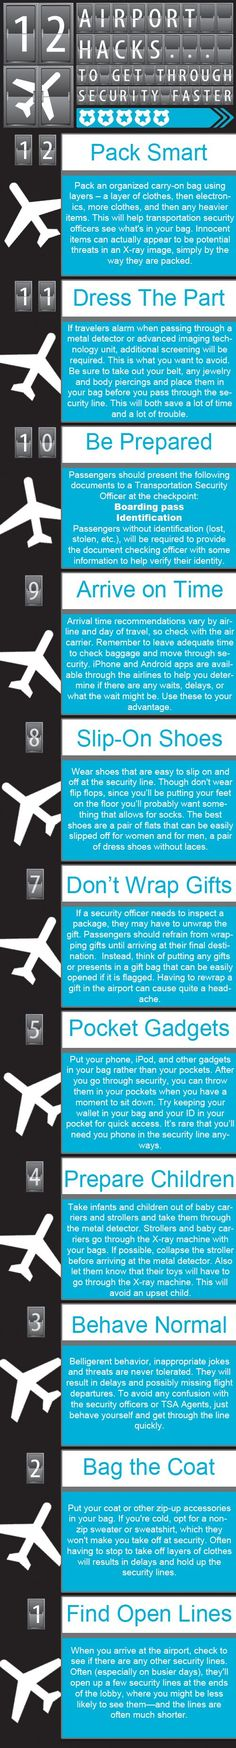 12 Airport Hacks To Fly Through Security during the Holidays